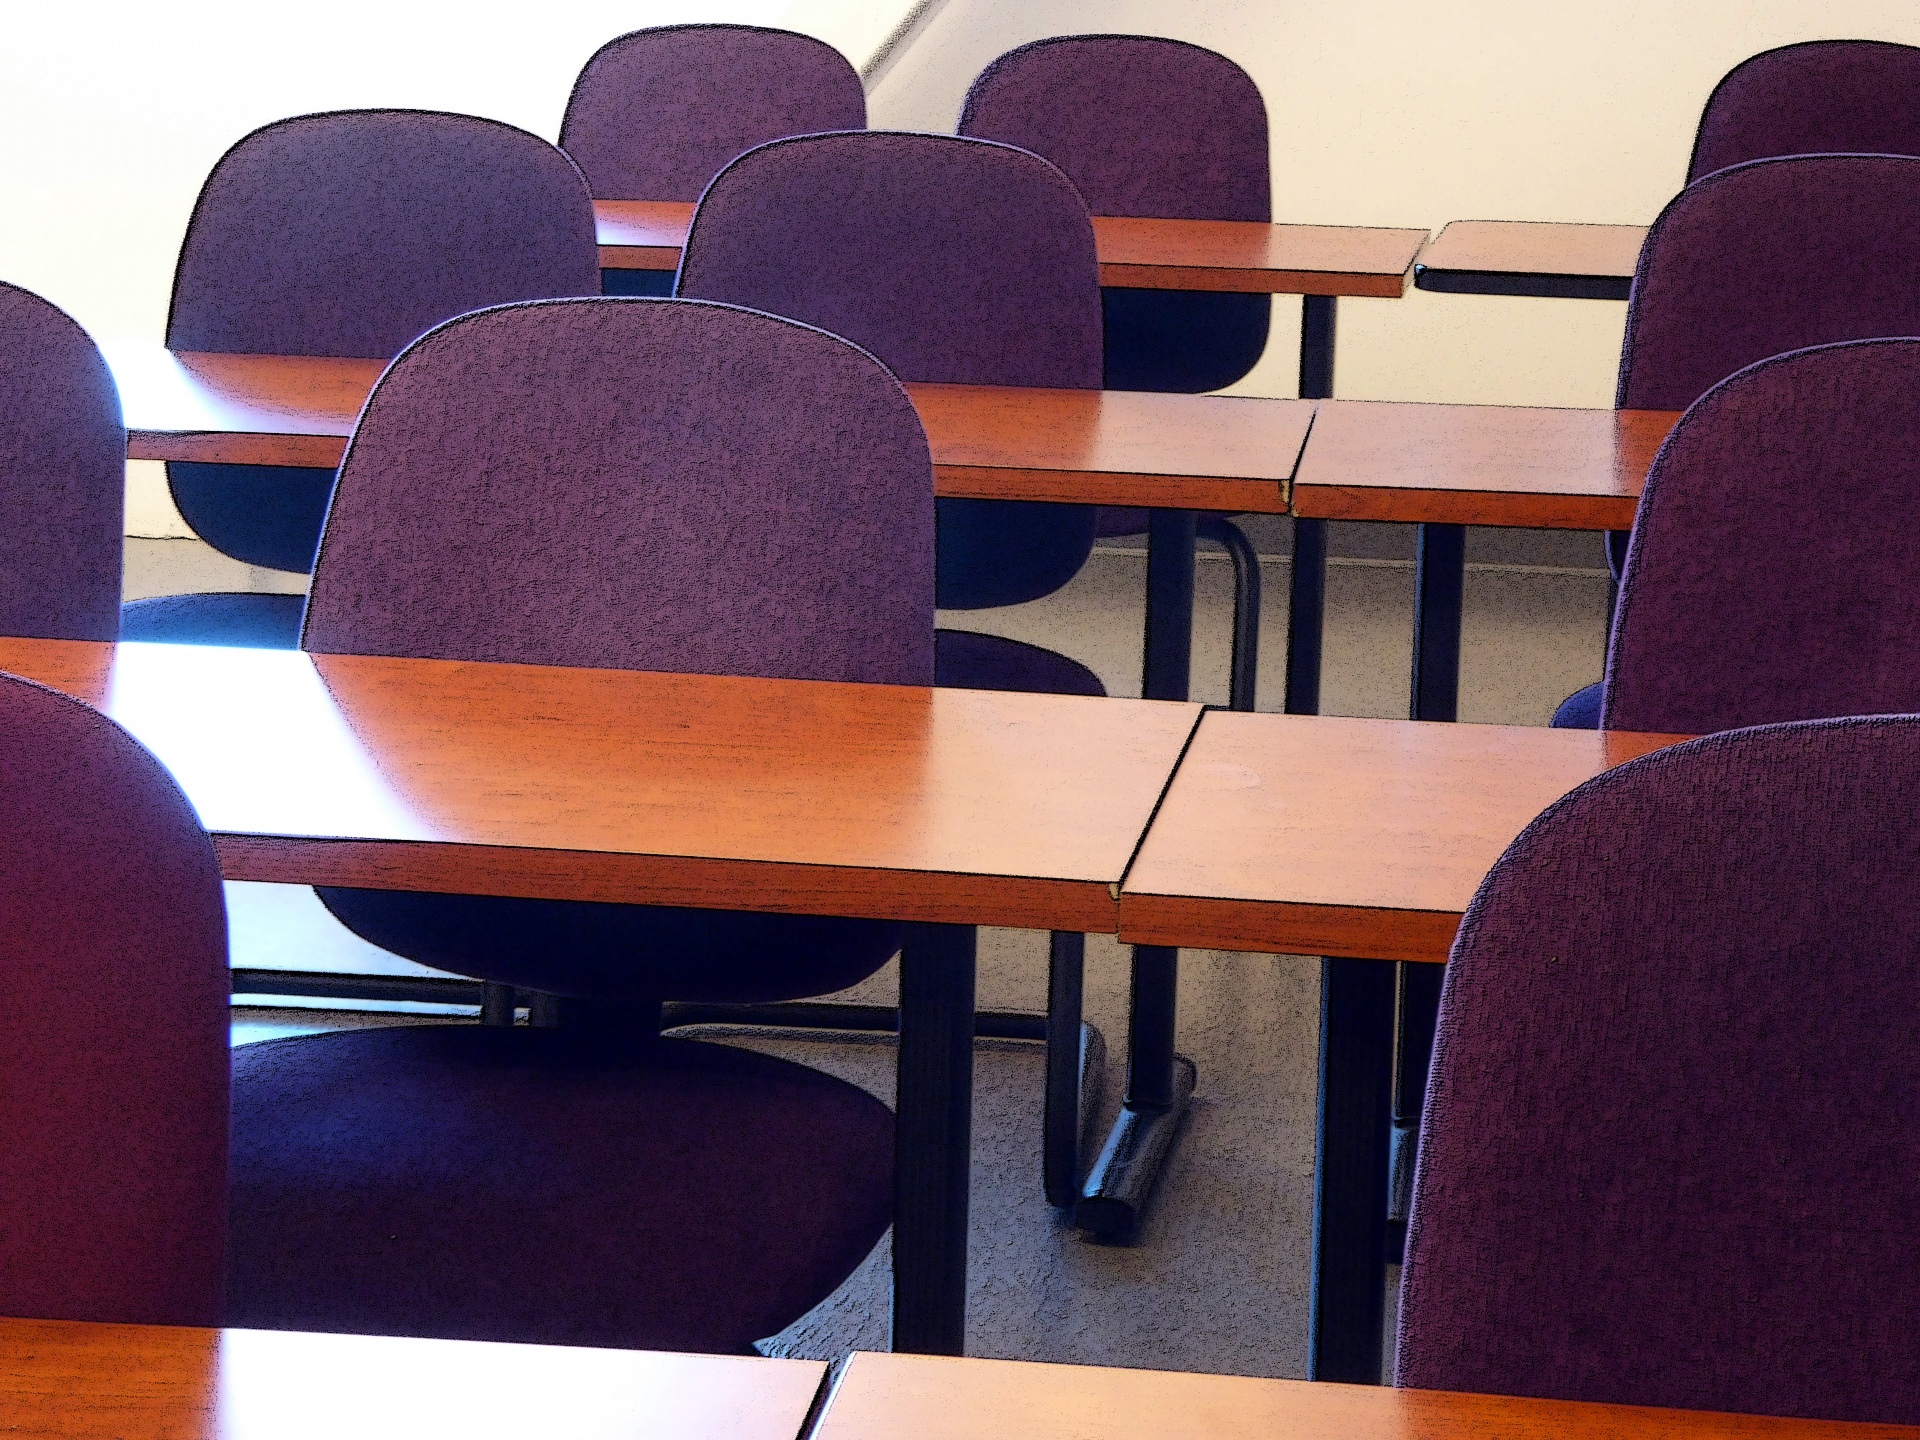 teacher table and chair paidar barber classroom tables chairs 2 free stock photo public